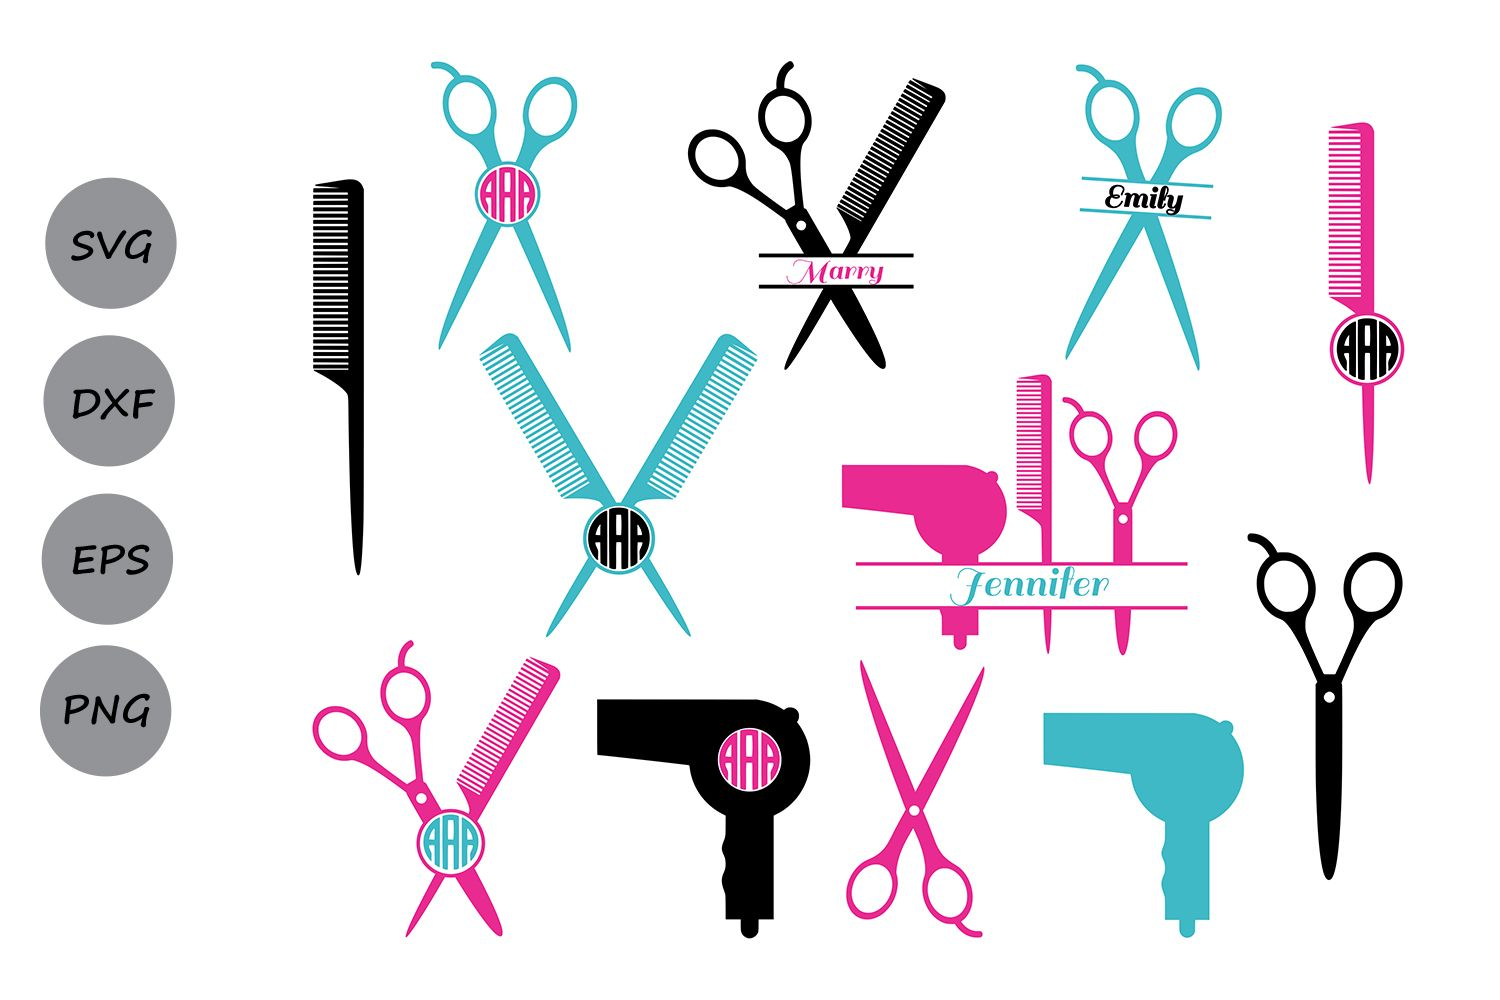 Hairdresser Svg Cut Files Hairstylist Monogram Circuit Board Wall Clock By Monogramit Scissors Dxf Silhouette Commercial Use Cosmosfineart